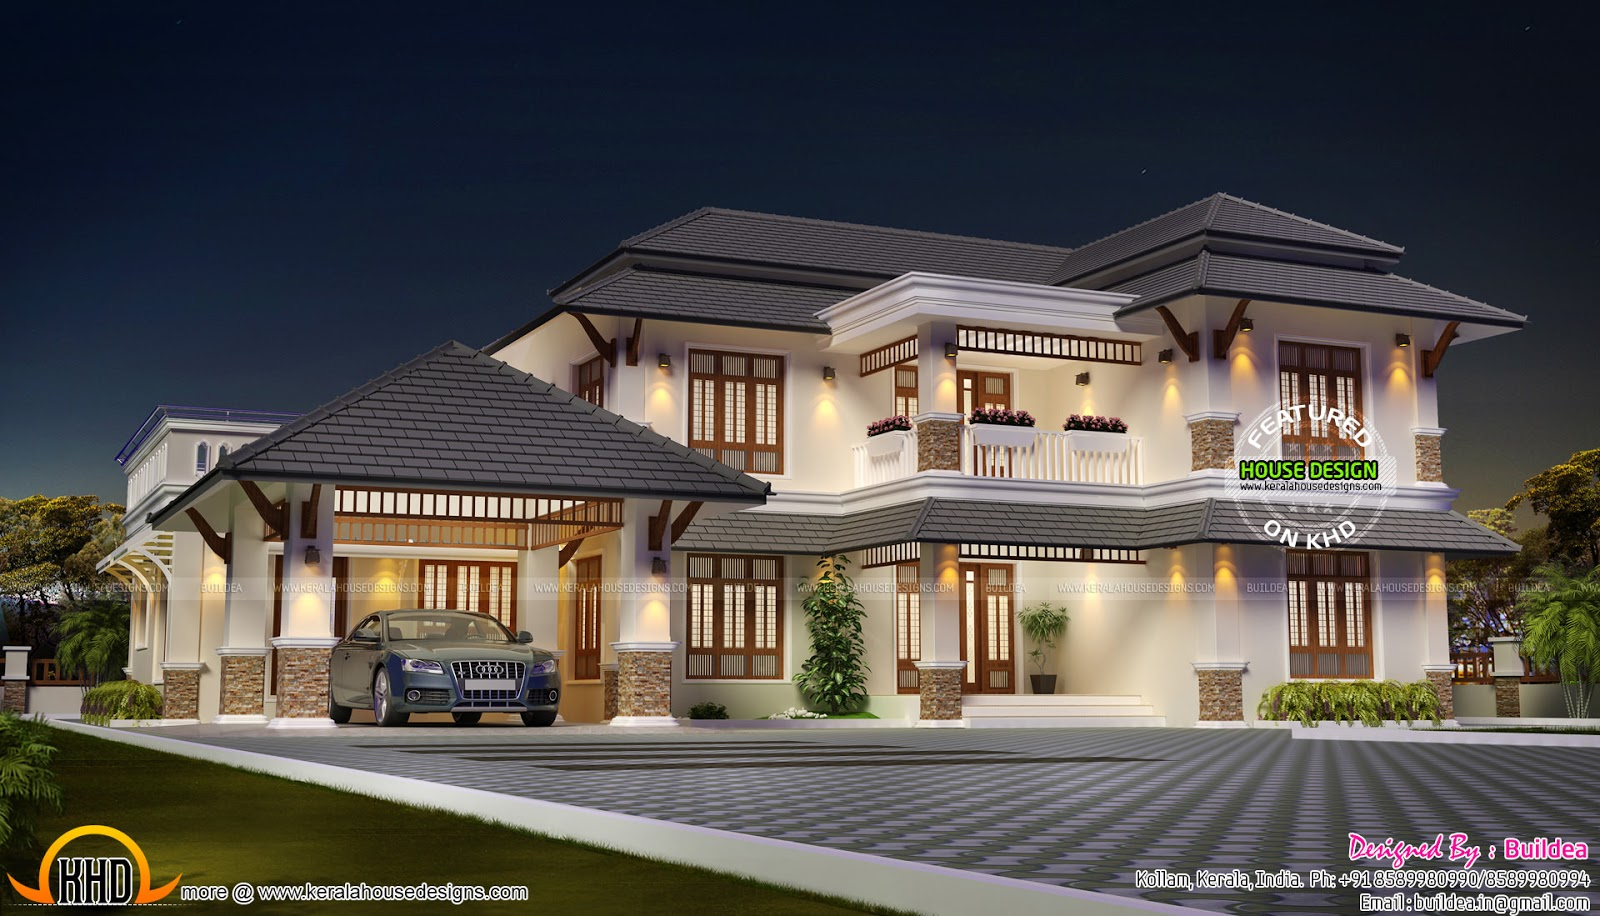 Aesthetic looking house plan kerala home design and for 5000 sq ft house plans in india